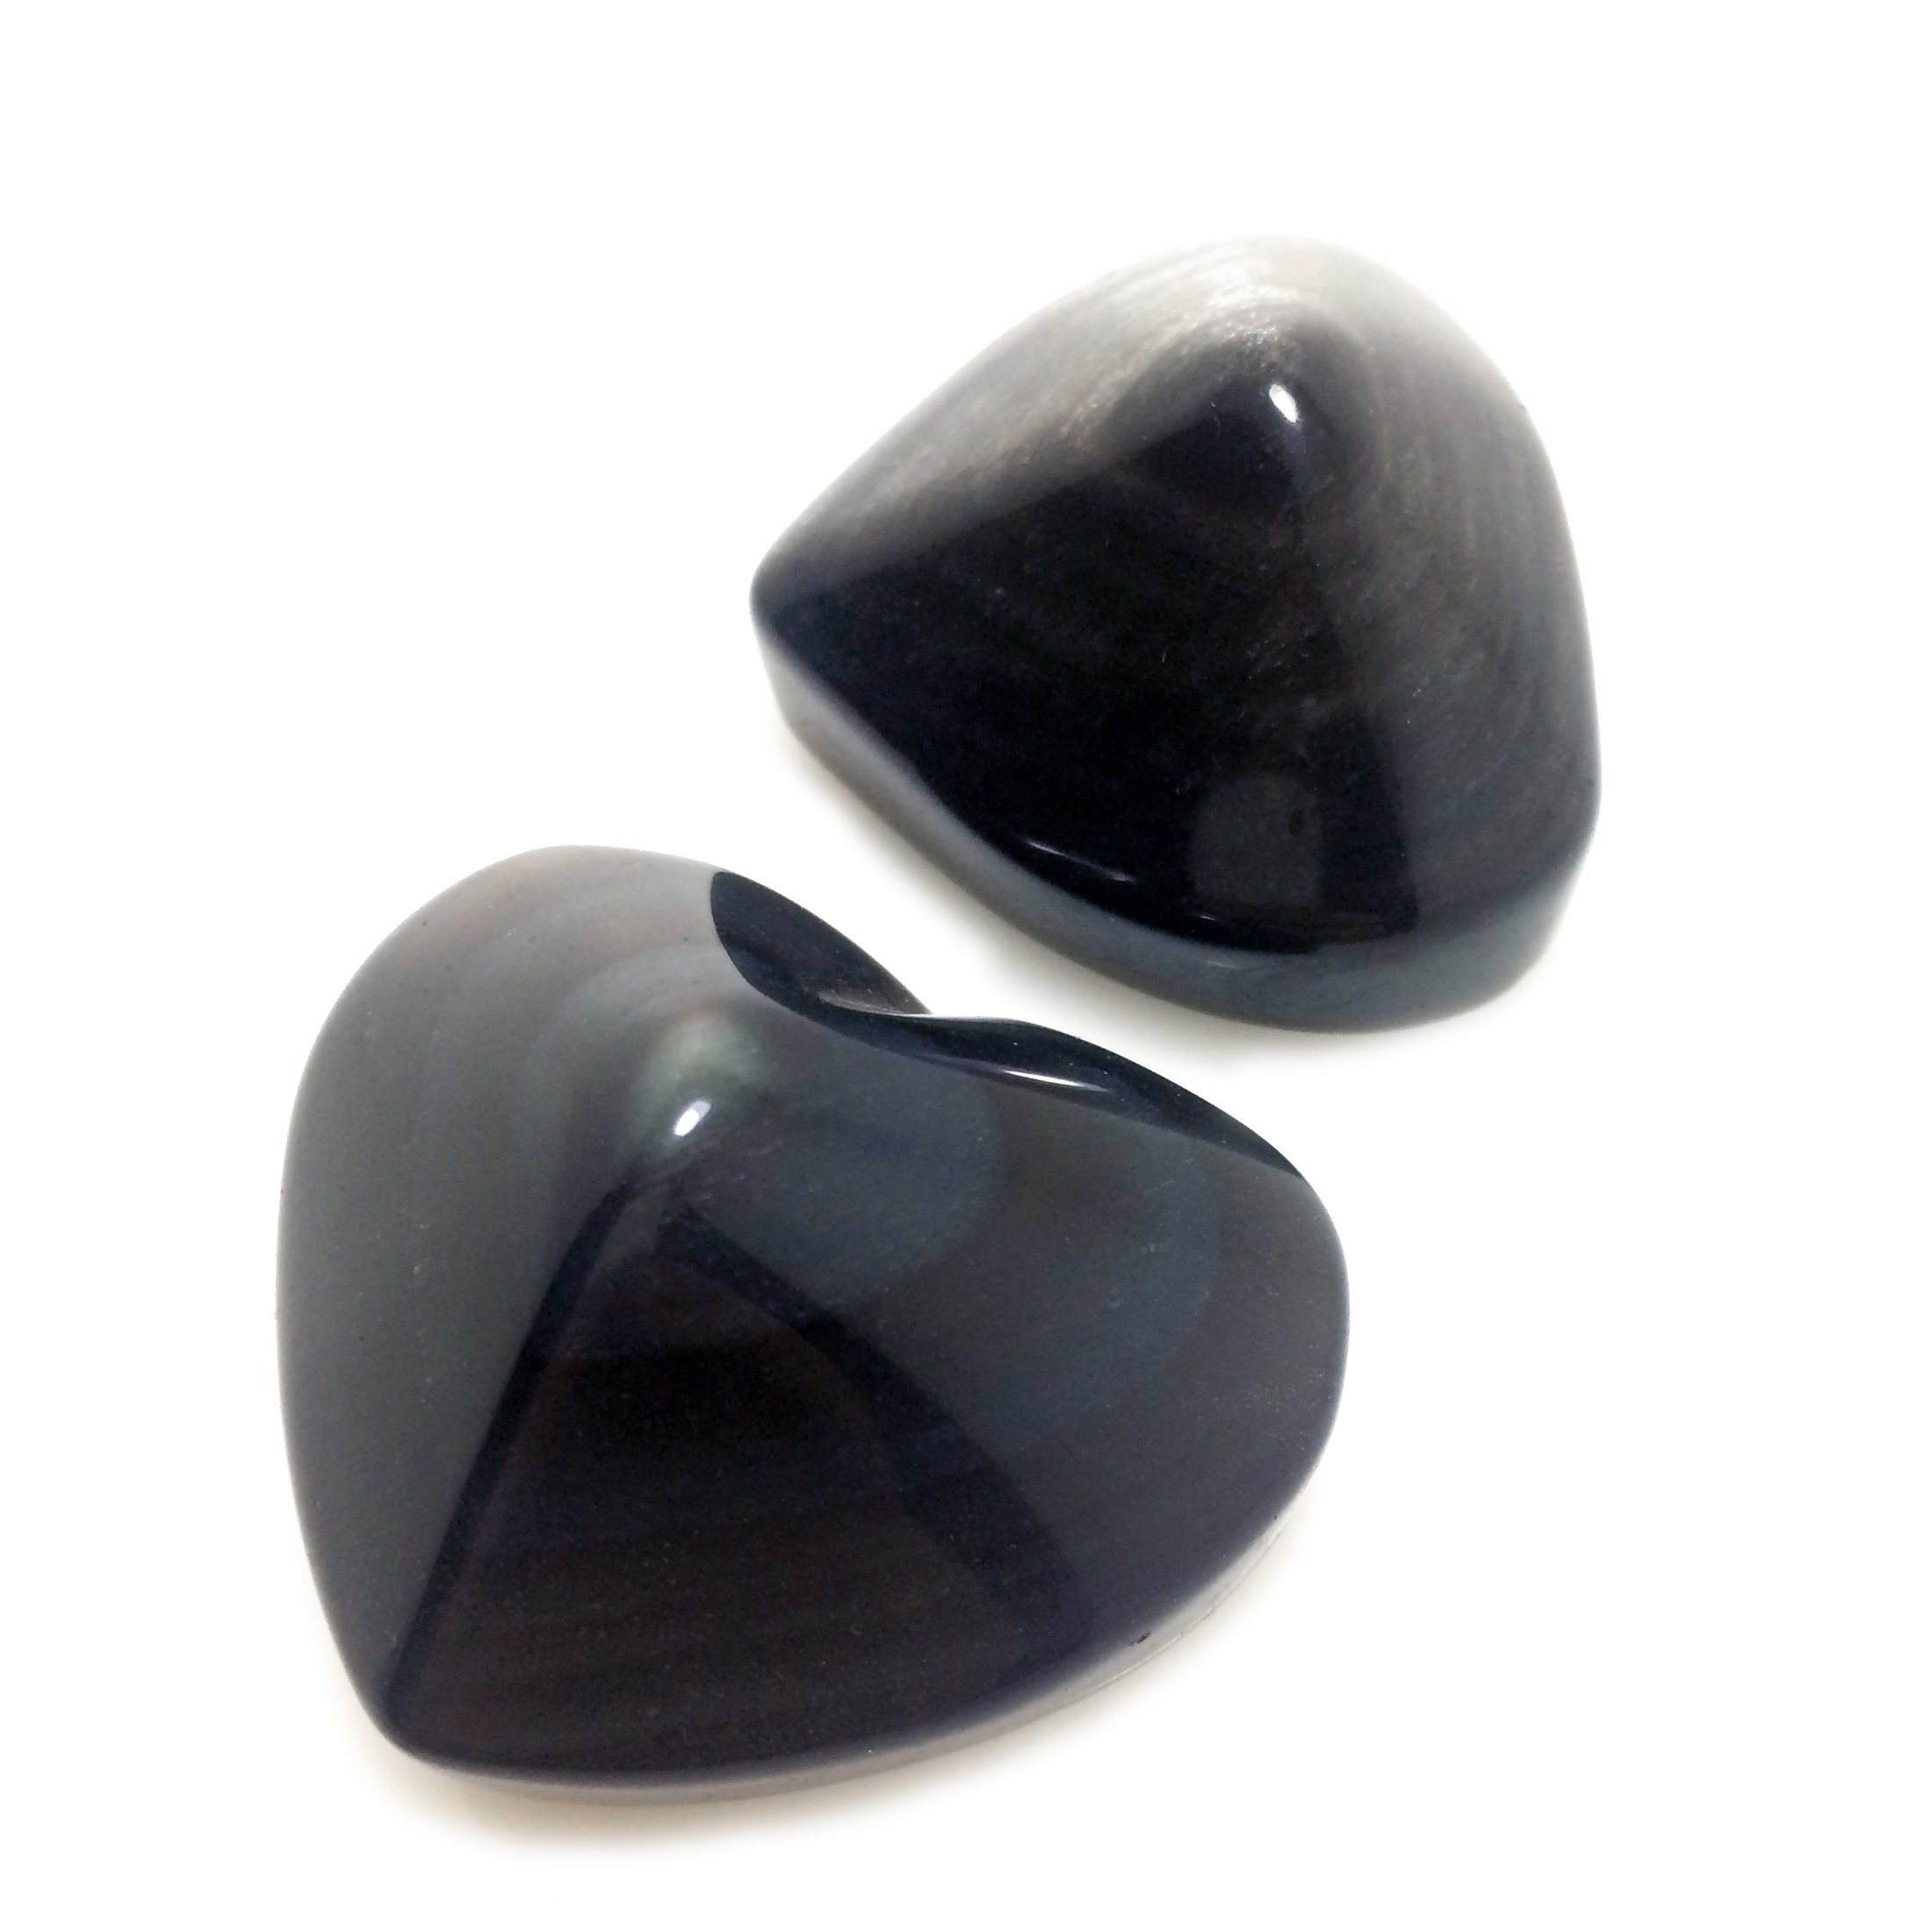 Polar Jade Pair of Crystal Hearts of Gem Quality Rainbow Obsidian and Silver Sheen Obsidian for Healing Meditation Chakra Balancing Home Decoration Spa Massage